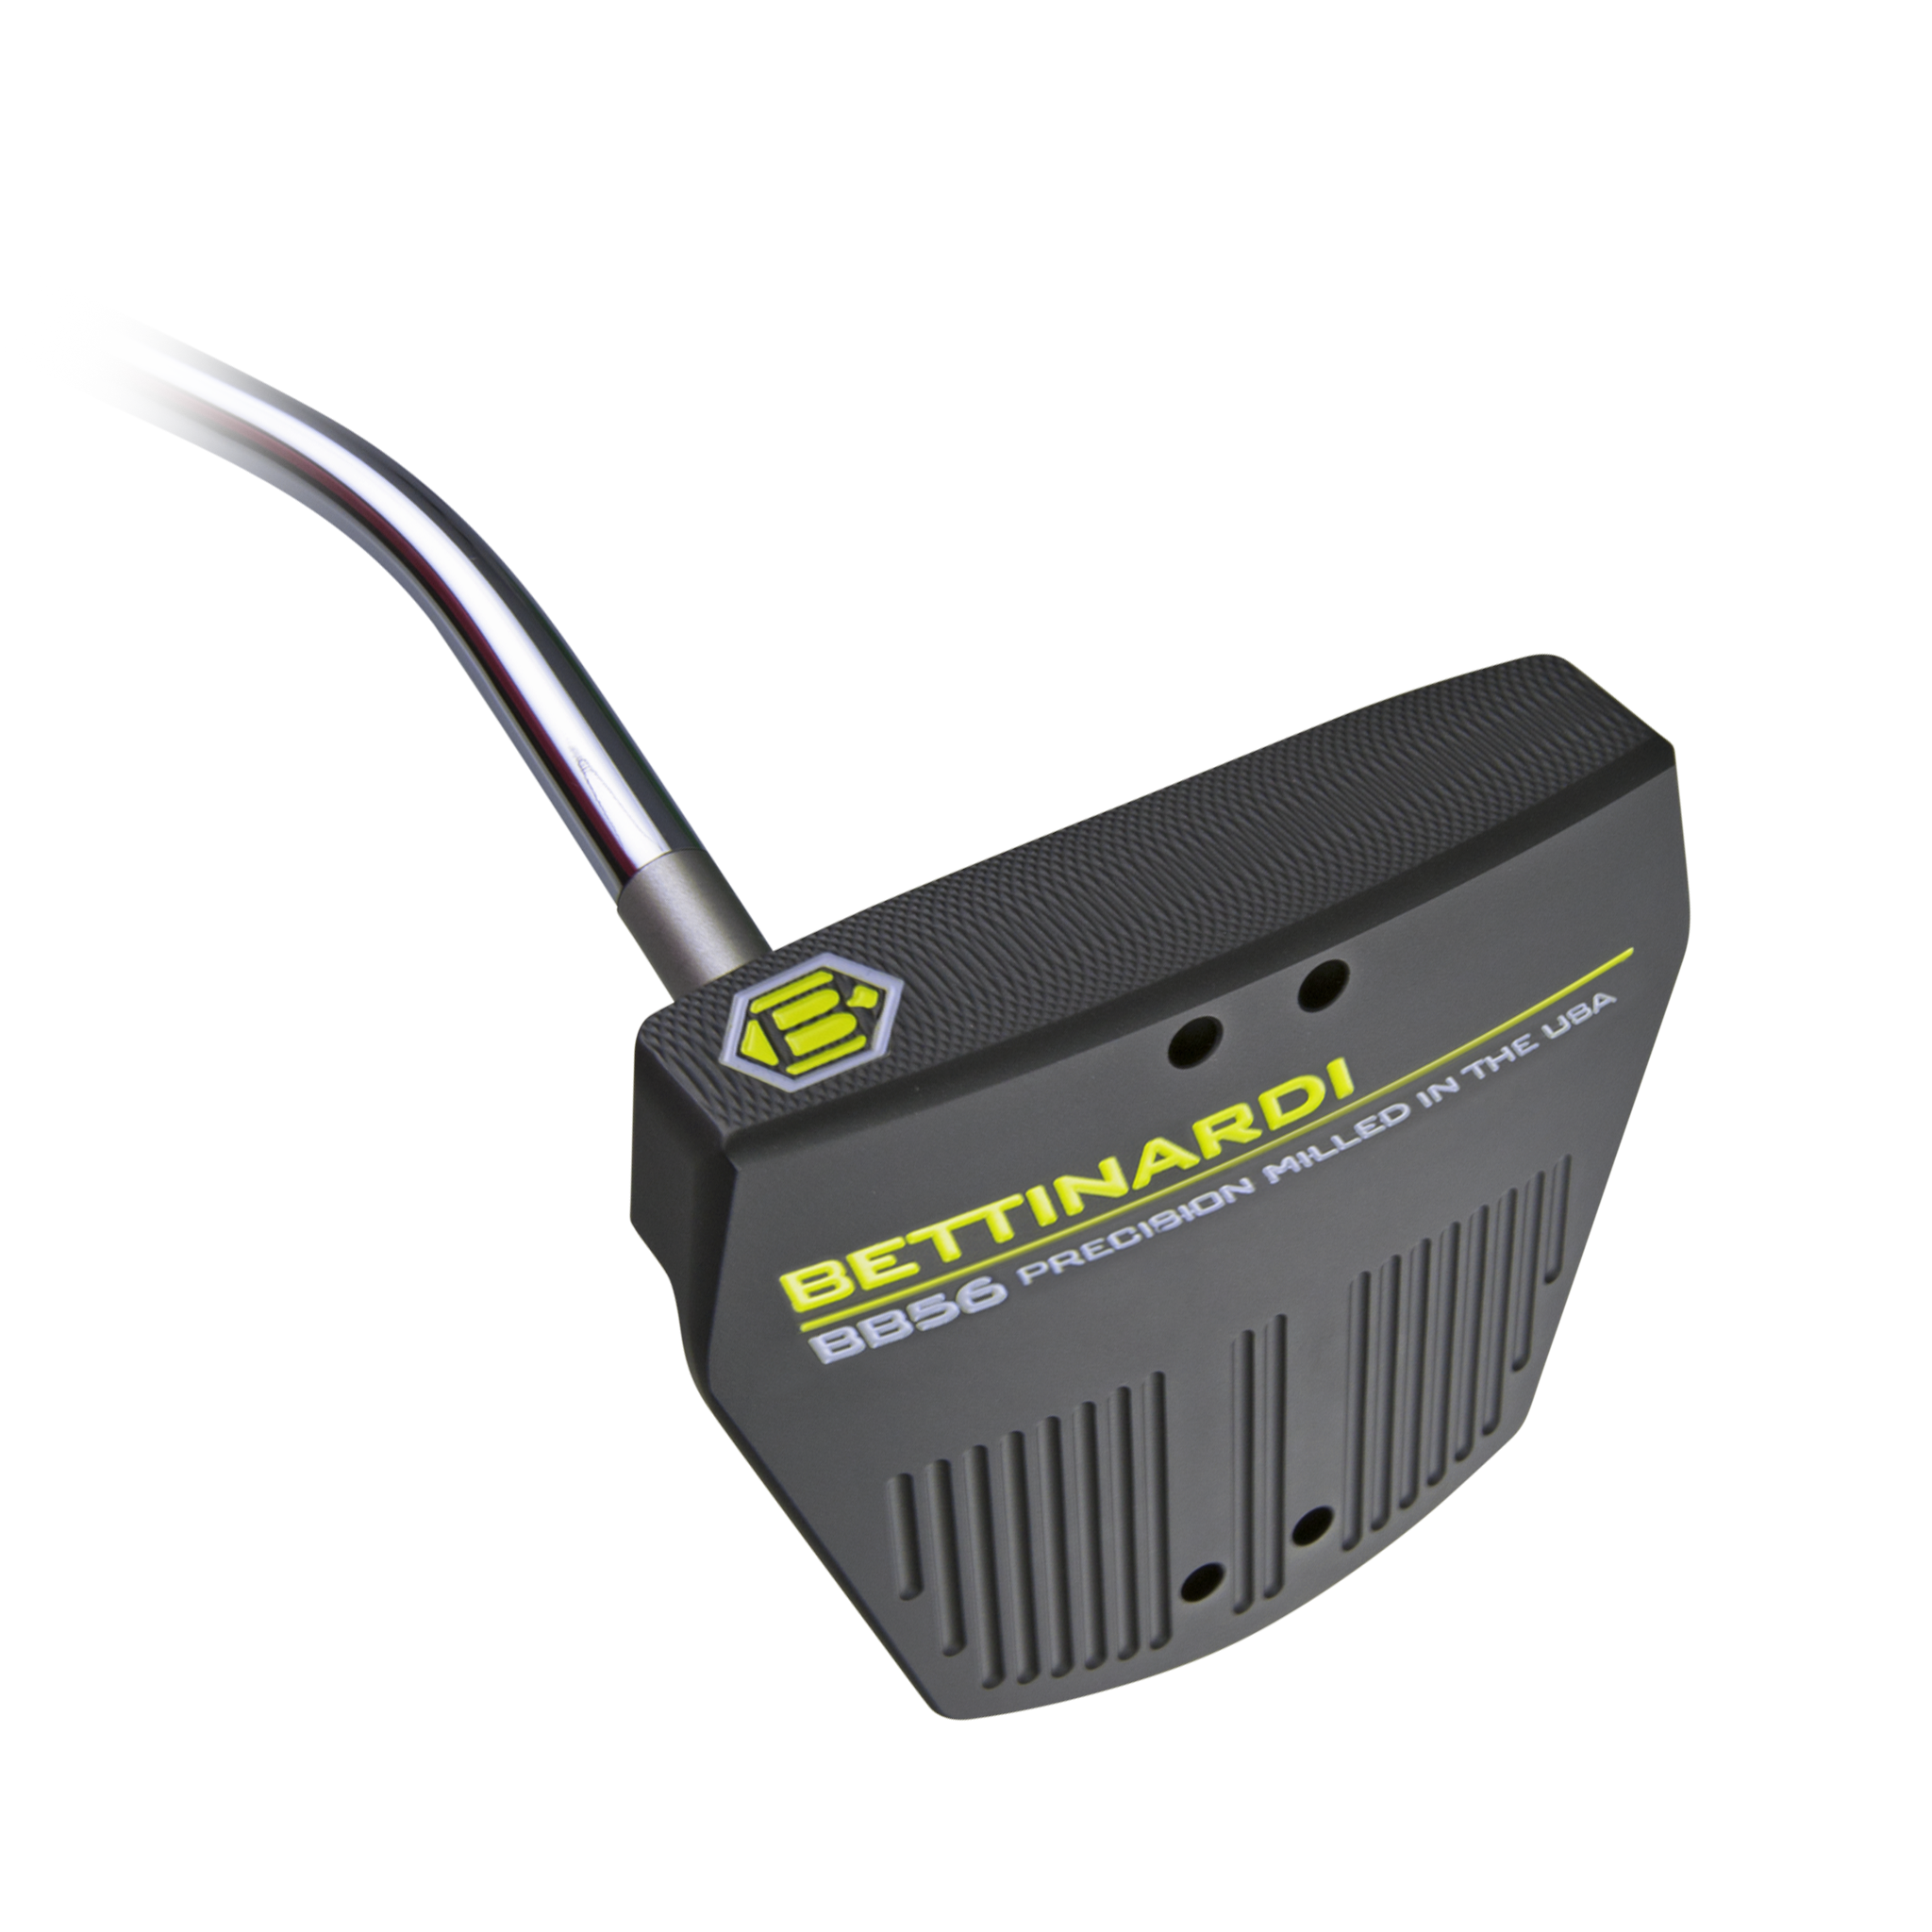 BB56 Left Handed Putter - BettinardiGolf